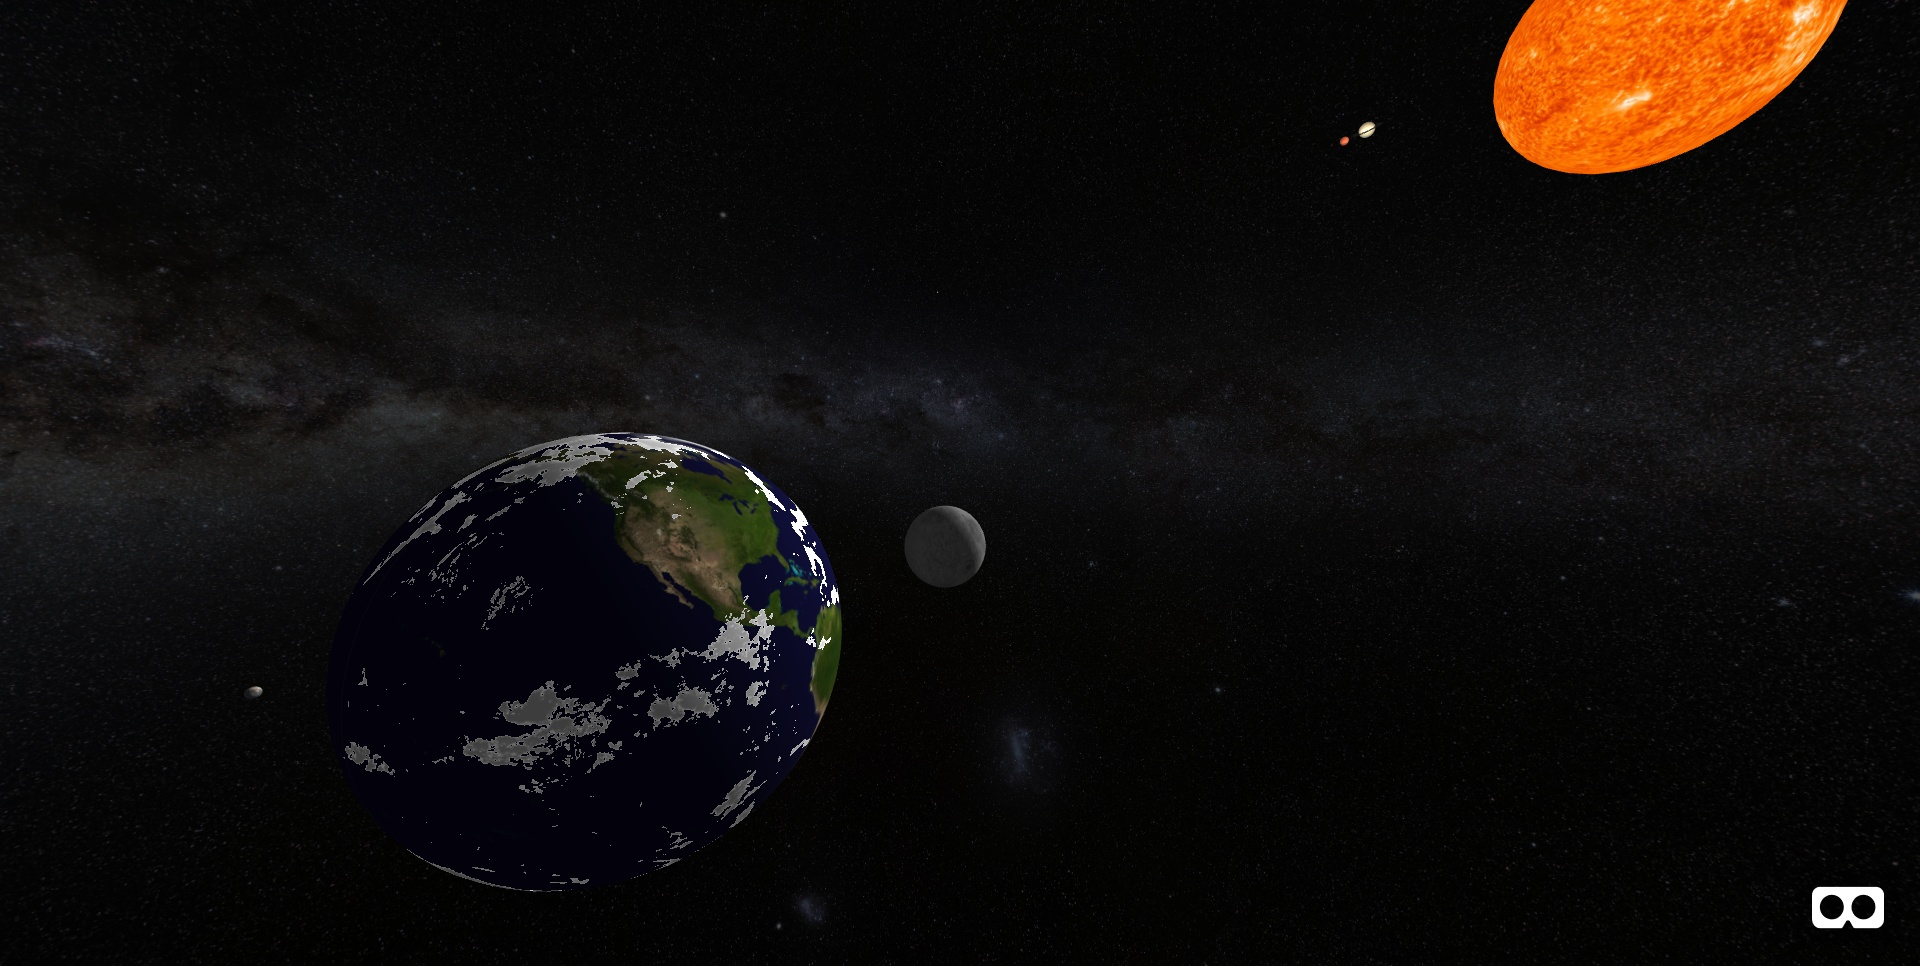 Simulation of the Ptolemaic system of the universe